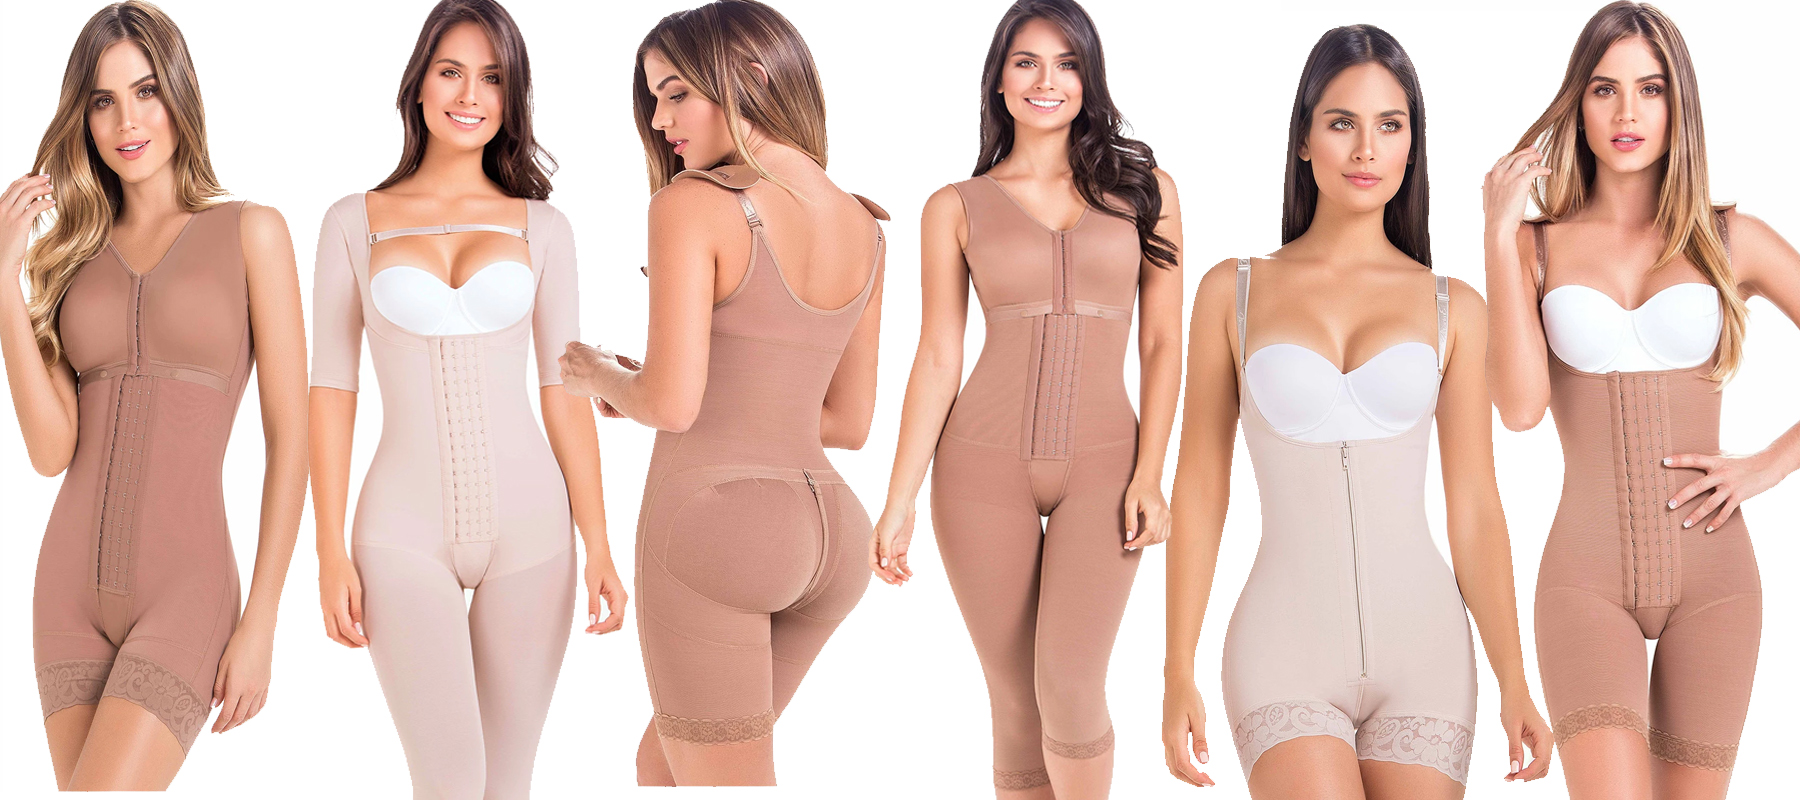 How To Buy All-In-One Body Shaper